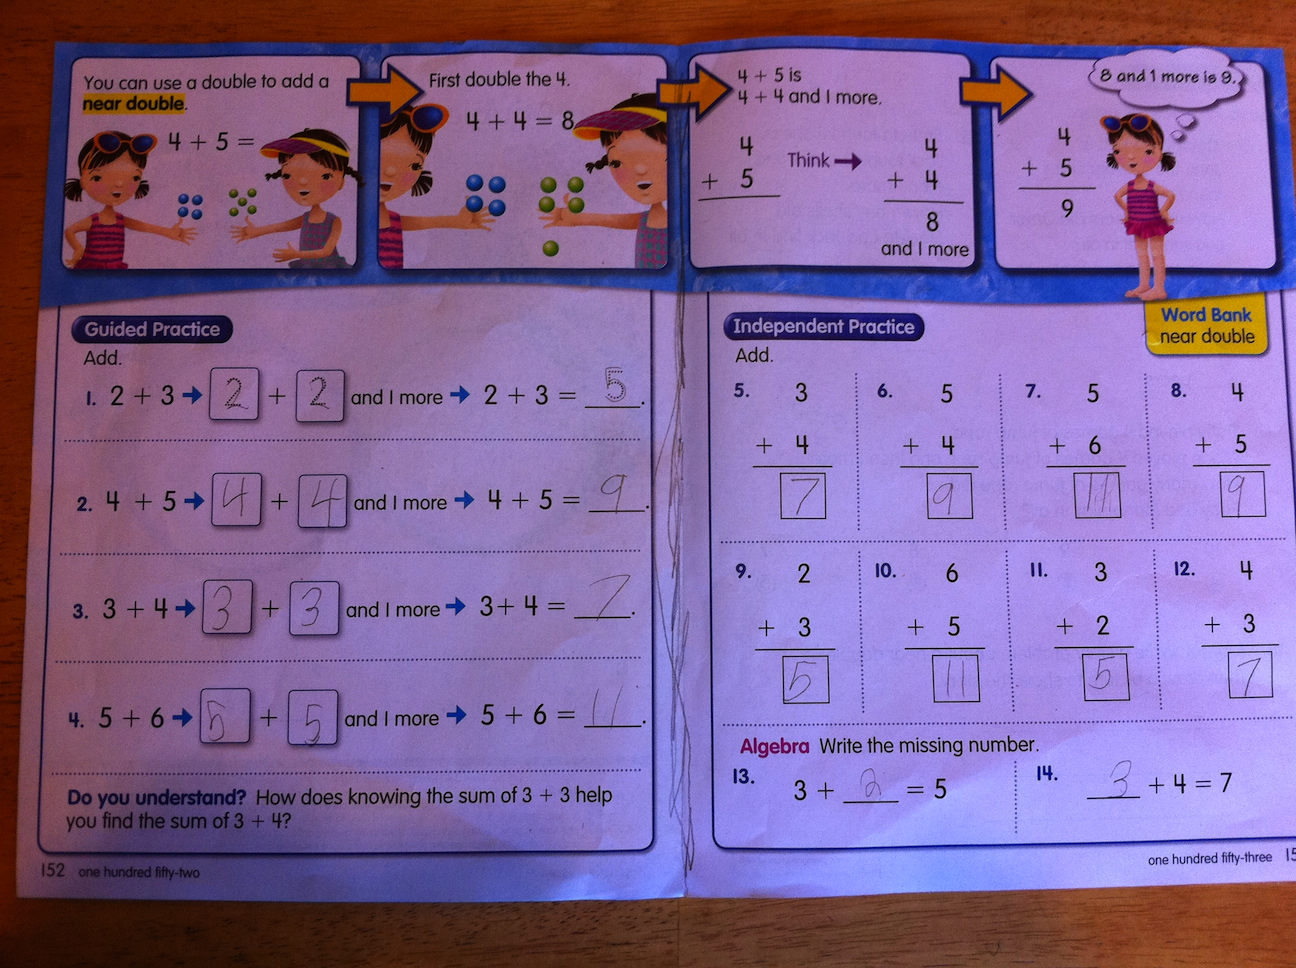 math worksheet : envision math 2nd grade worksheets  worksheets : Envision Math 3rd Grade Worksheets